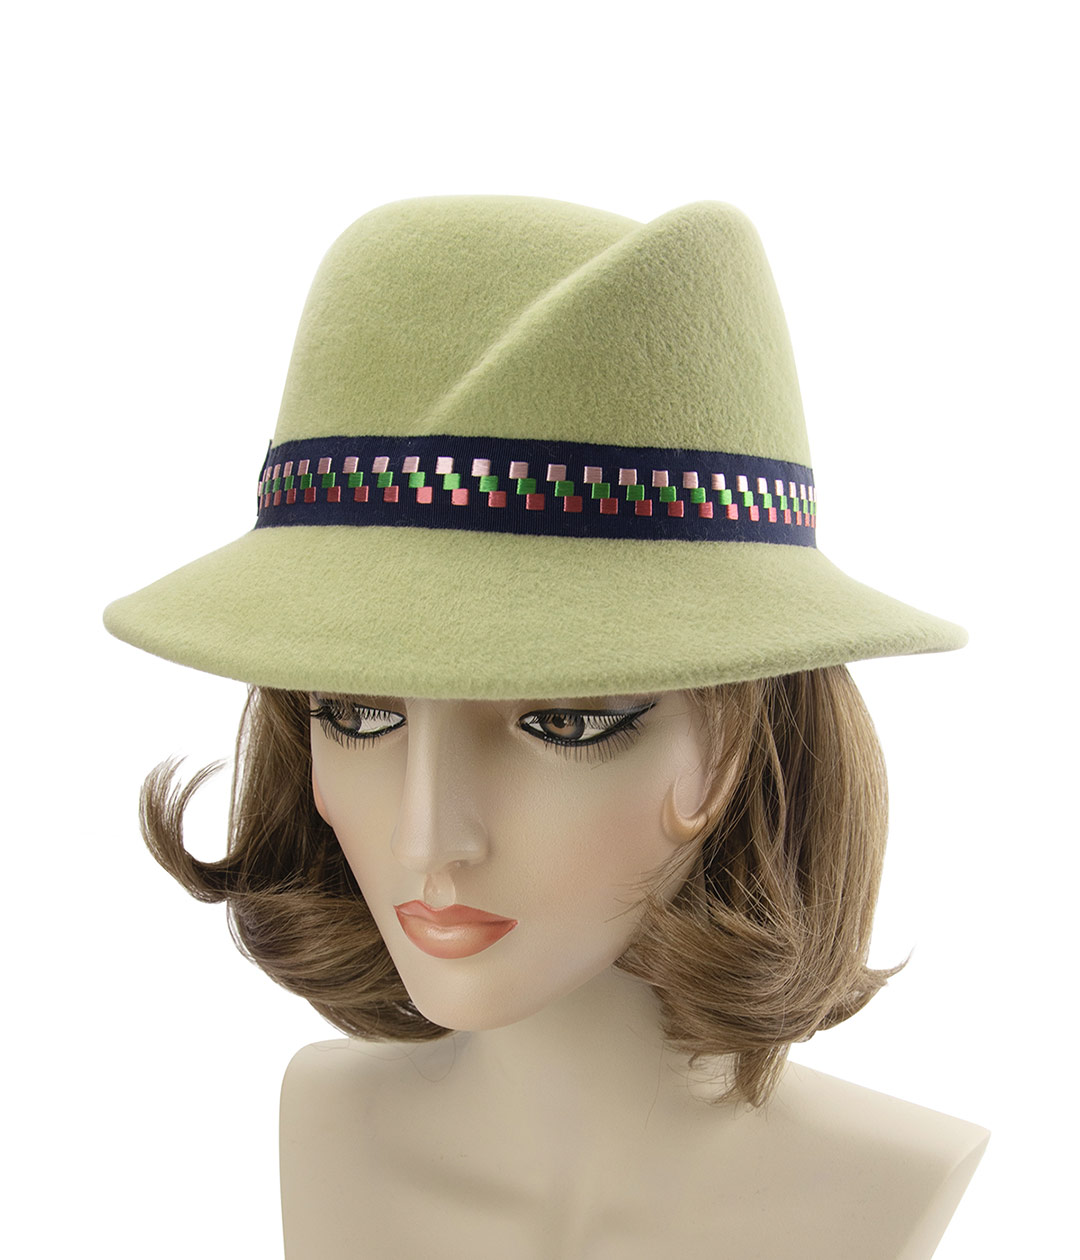 Left side view of light green fedora with angled crown.